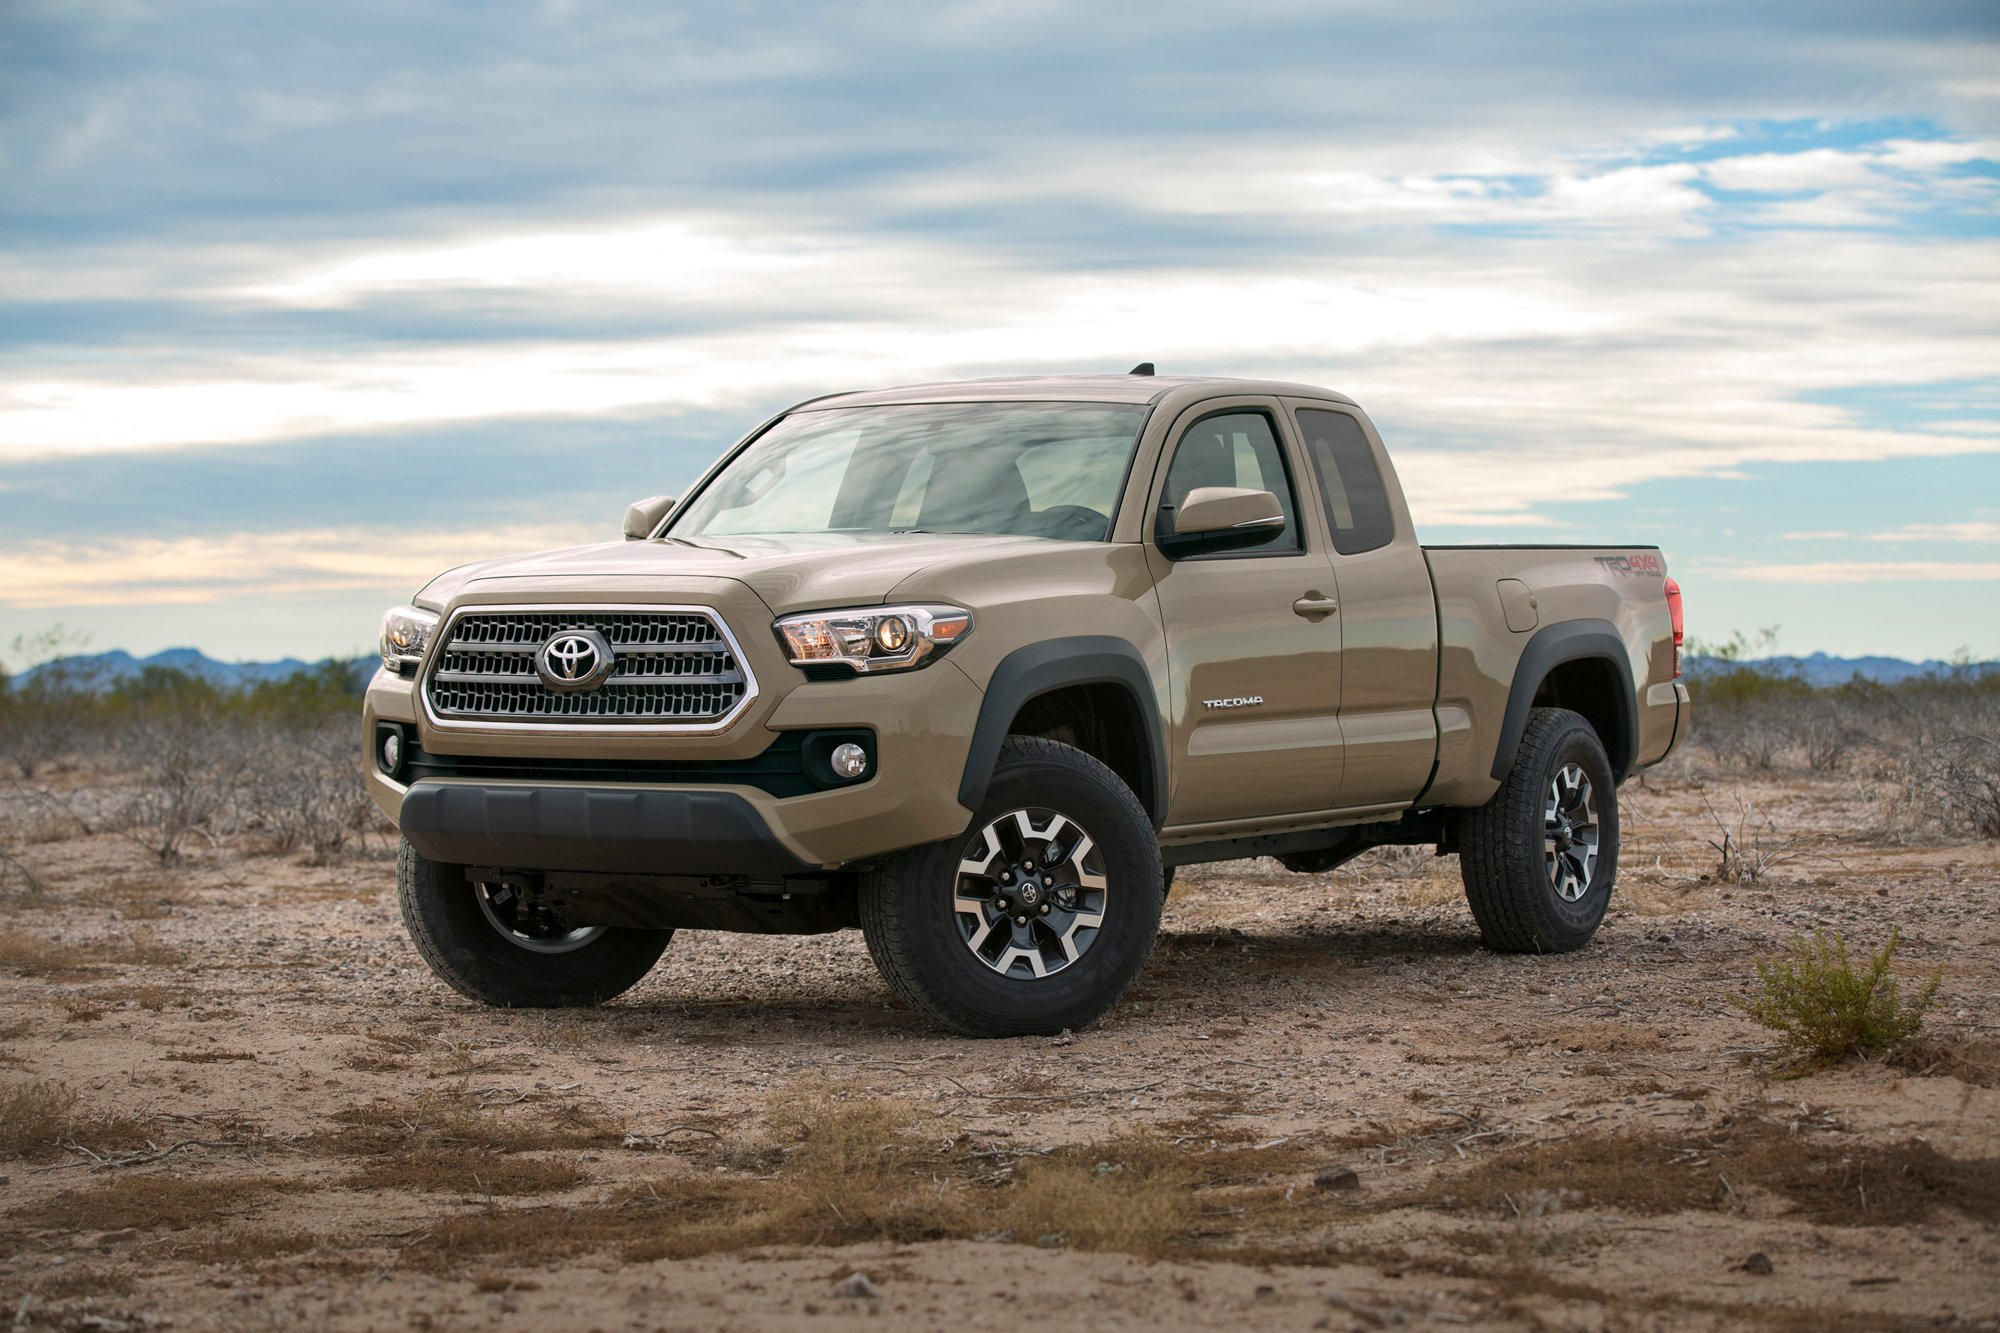 new s series photos and info photo toyota pro car news test driver tacoma original reviews review trd